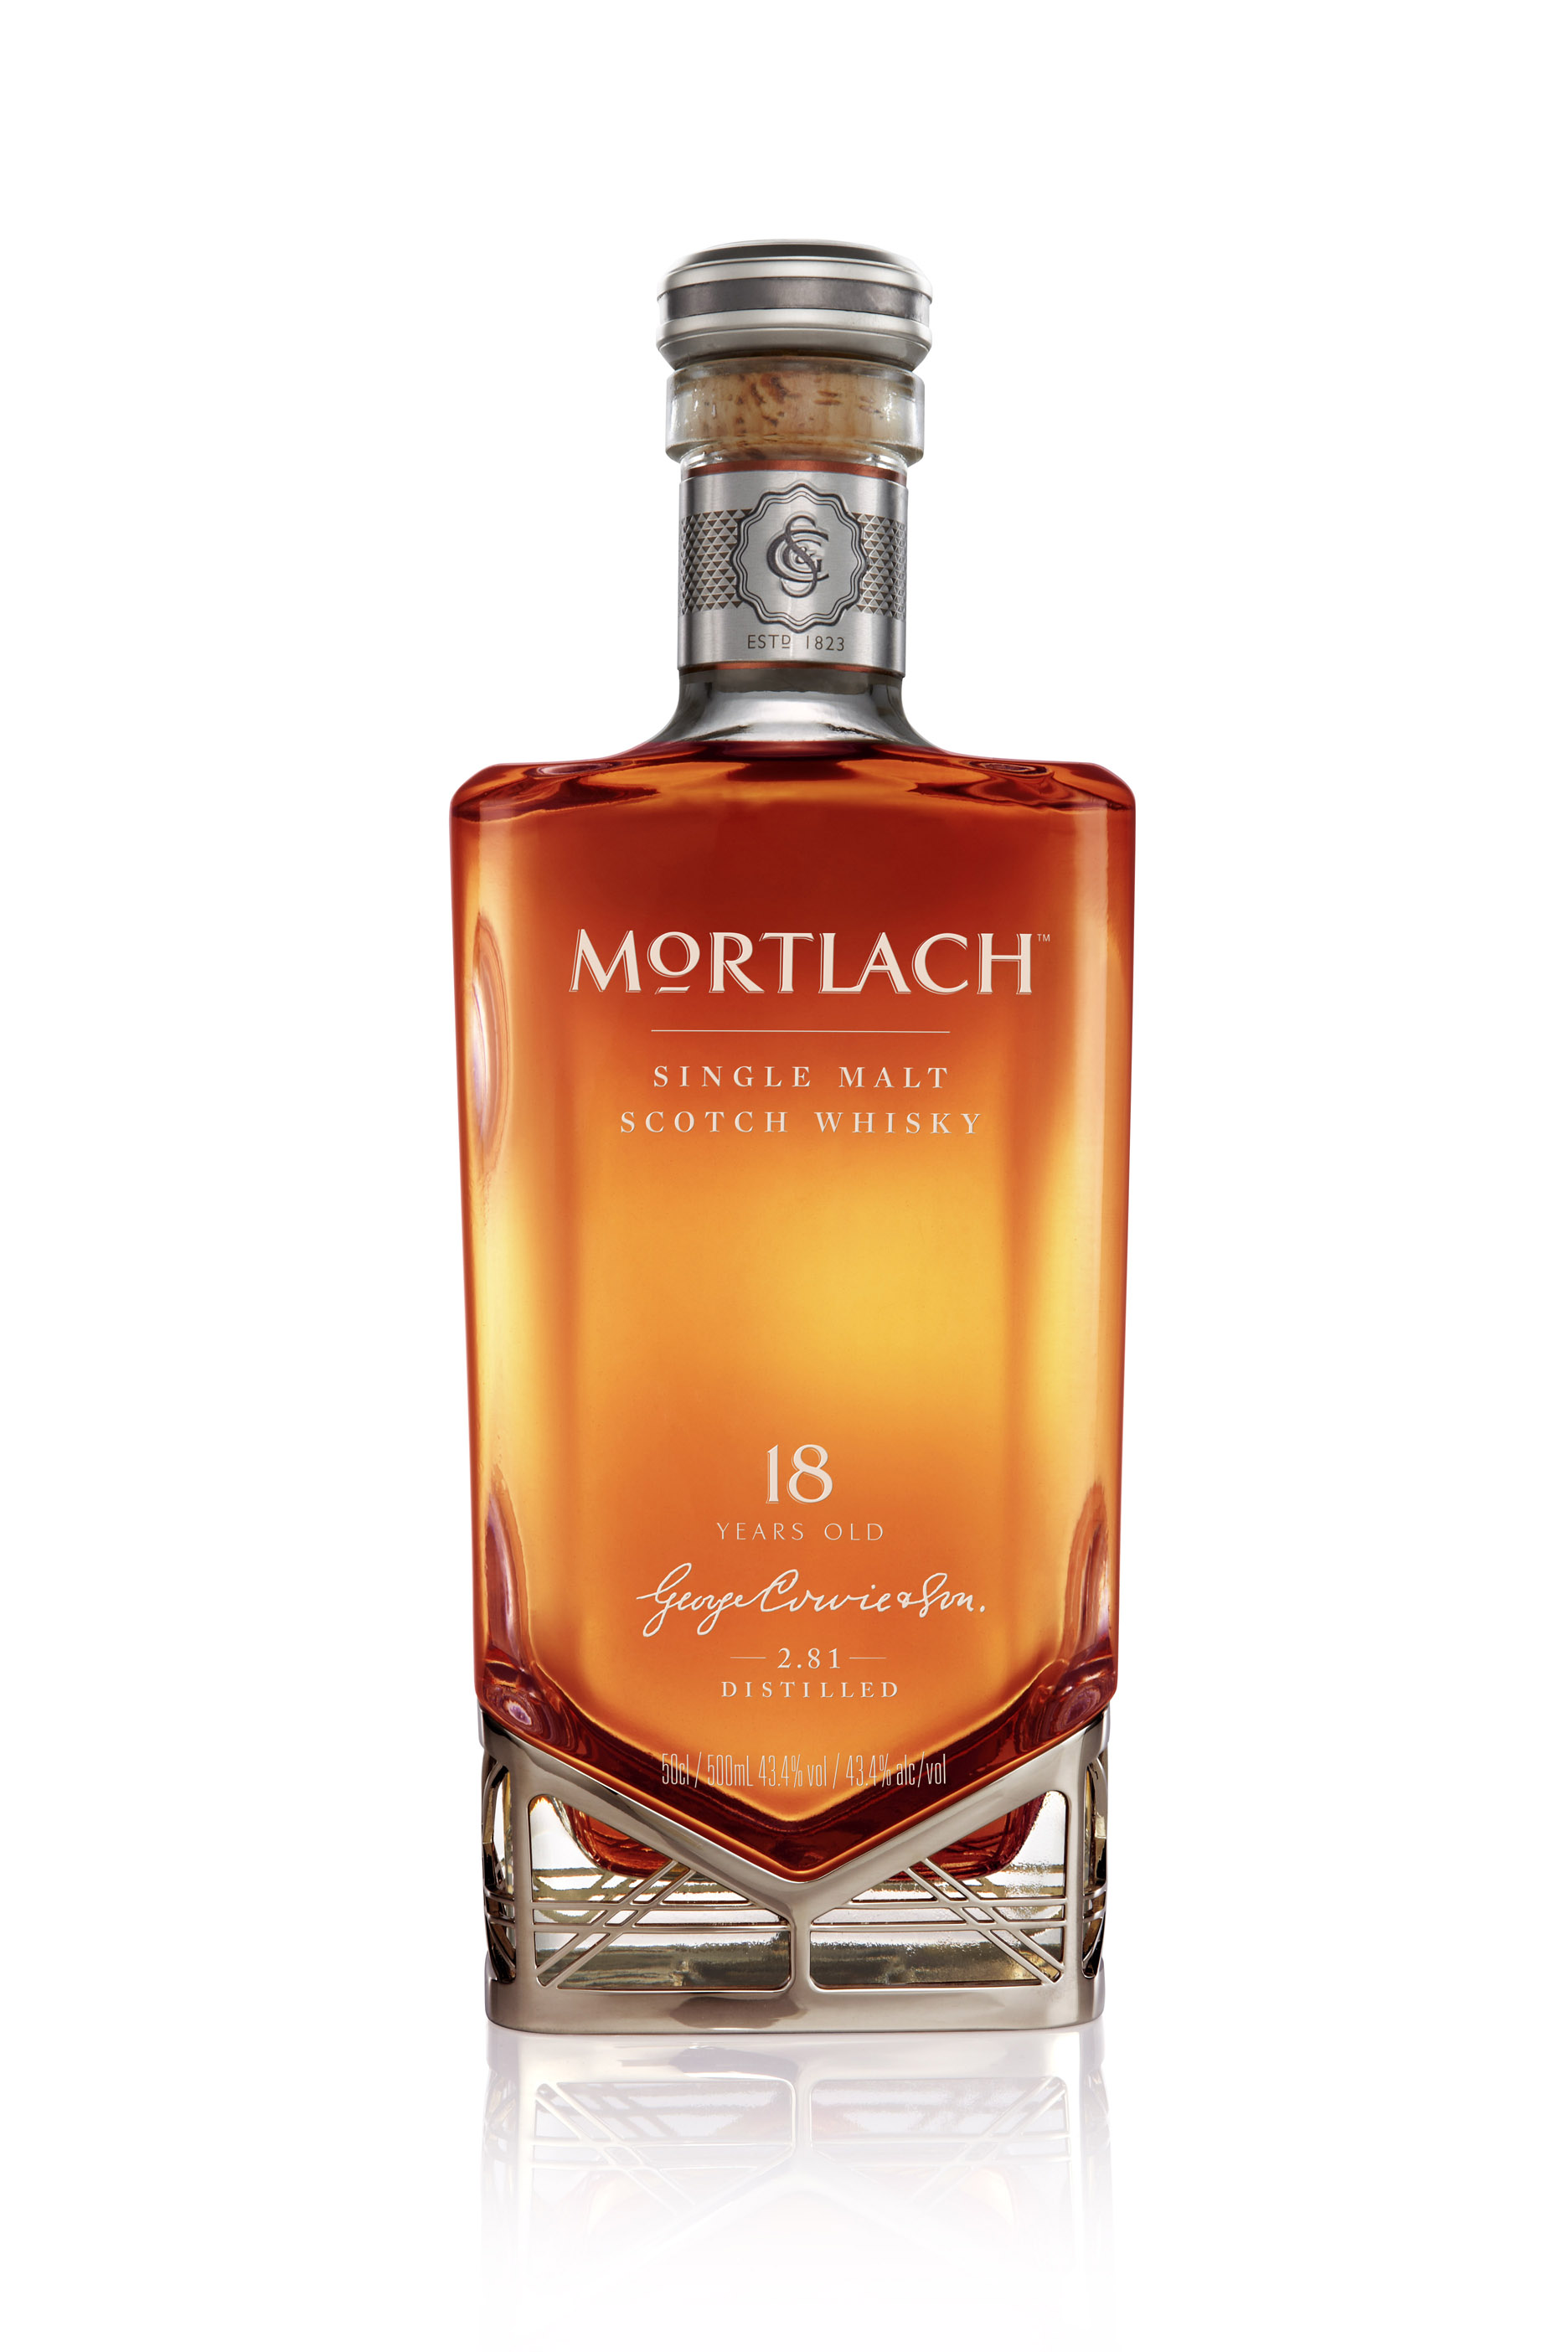 Mortlach 18ans FACE RVB 200x300 Drinkhacker Reads   03.04.2014   More Mortlach, MLady